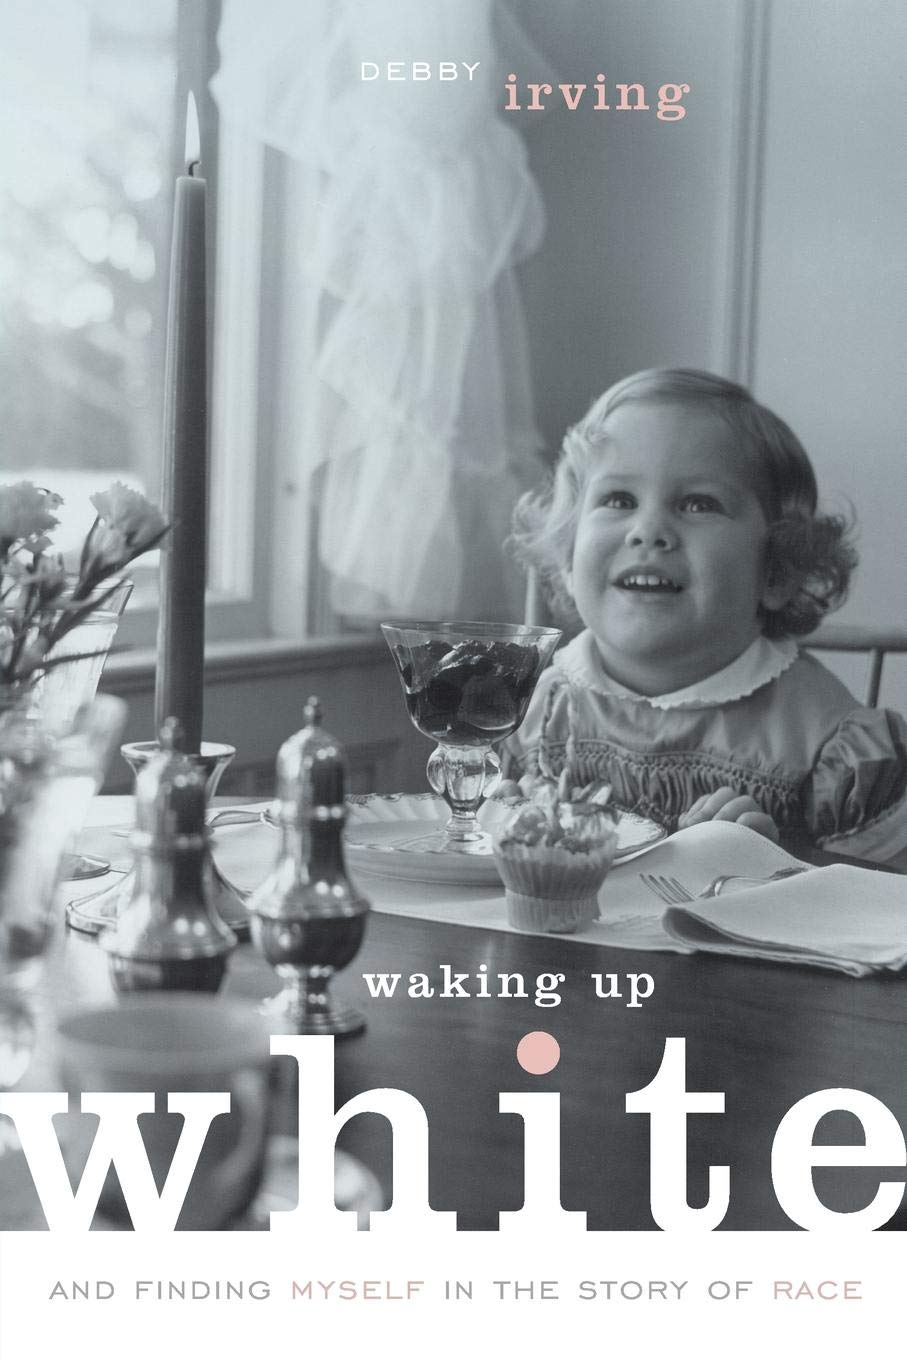 Cover of Waking Up White, and Finding Myself in the Story of Race